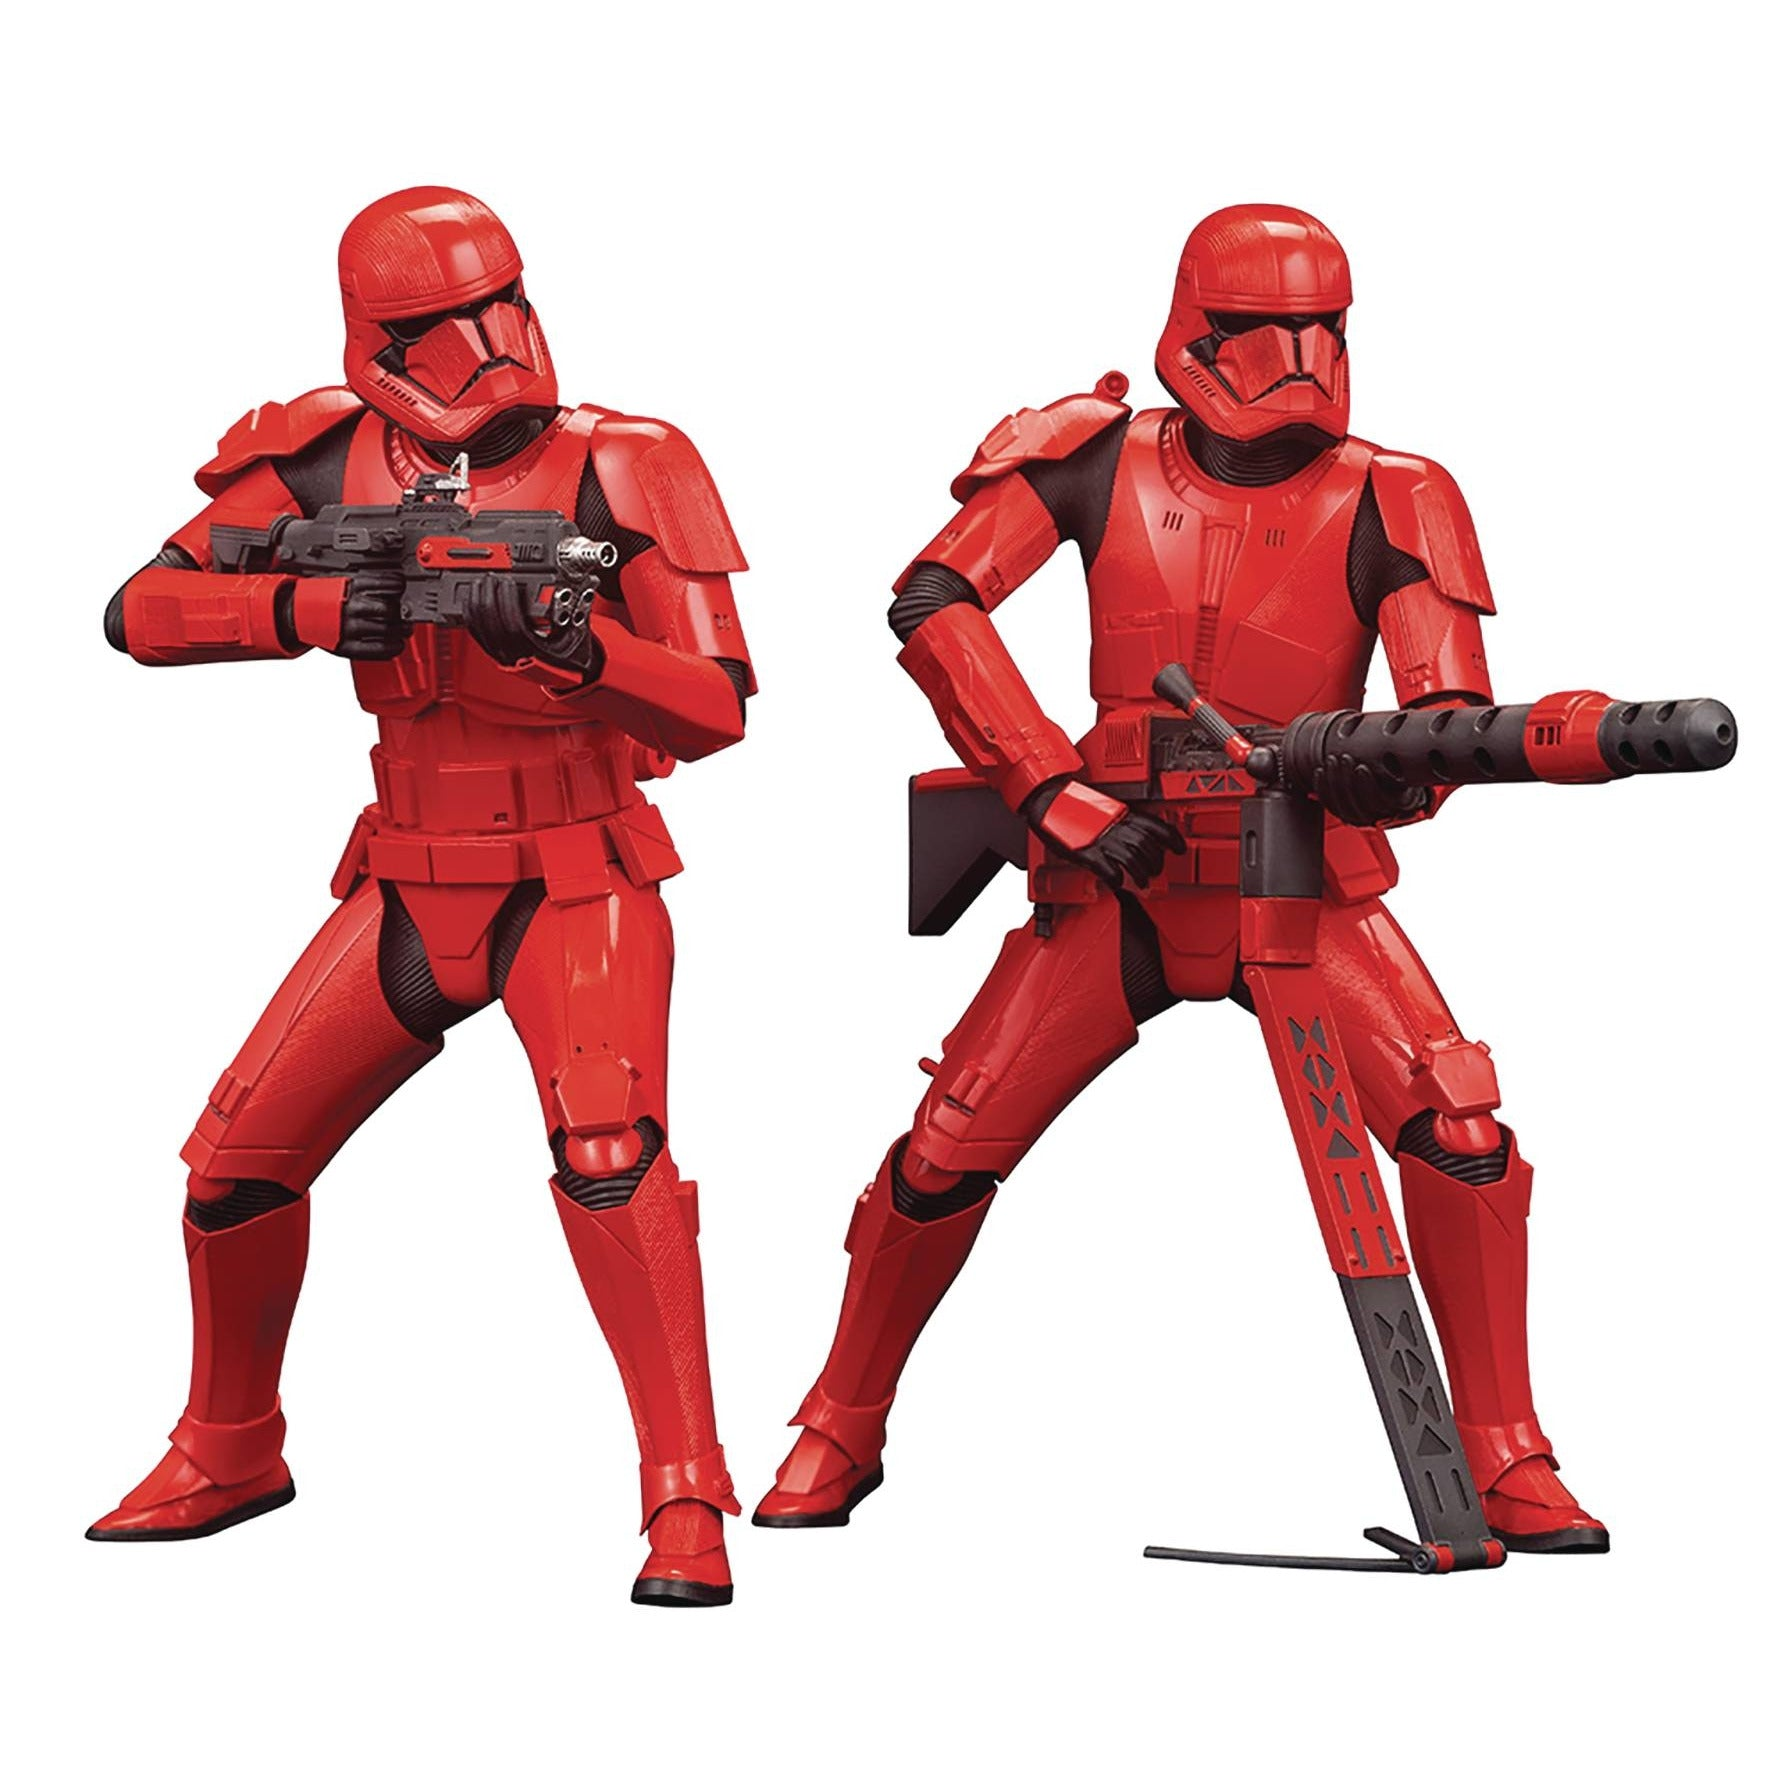 Star Wars: The Rise of Skywalker Sith Trooper ArtFx+ 2-Pack Figure Set